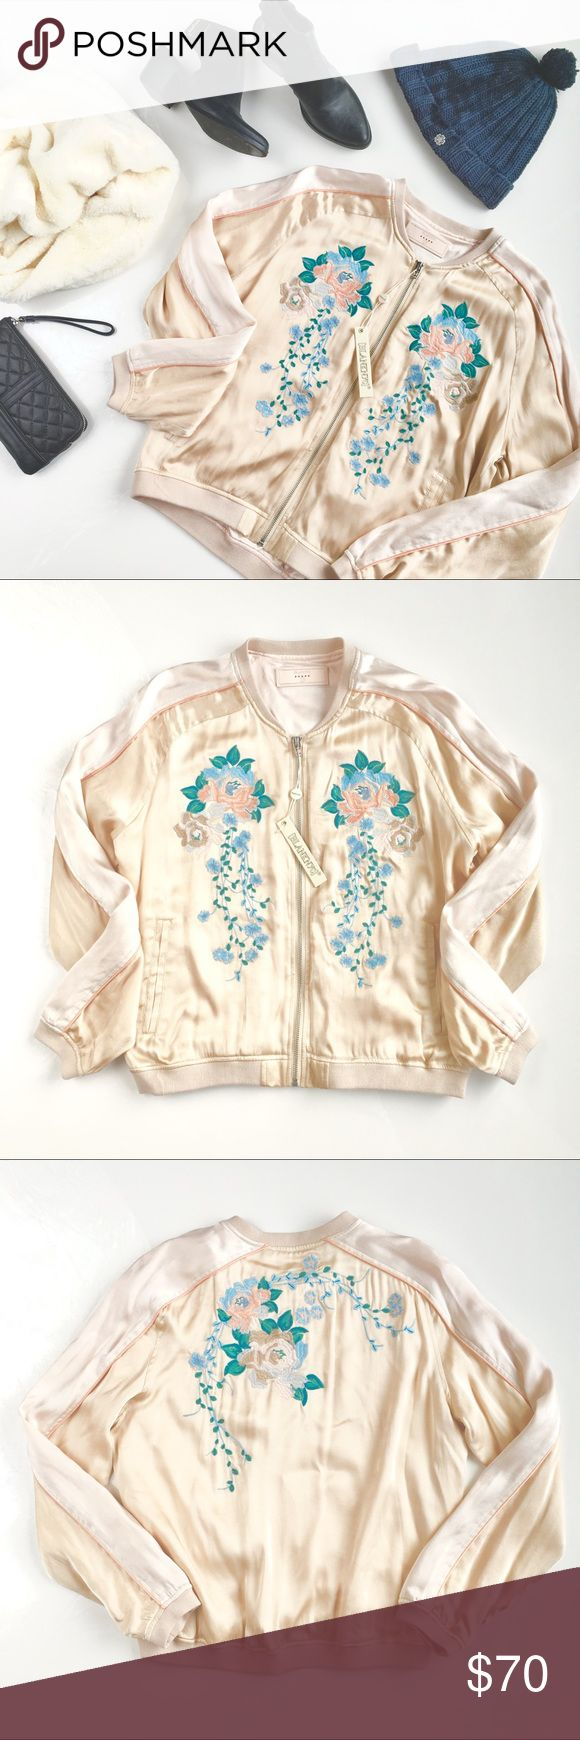 "BlankNYC Floral Embroidered Peach Satin Bomber, M An absolutely gorgeous bomber jacket from one of the best street-style labels, Blank NYC, with beautiful floral waterfall embroidery in sweet peach & pastel blues, functional pockets, and double-lining. Small imprint from security tag as shown, will erase with time/steam, price lowered to reflect. Size M, fits sizes S-M, measures approx 17"" across shoulders, 21"" across chest, 23"" long. Brand new, NWT. Please feel free to make an offer, bundle…"